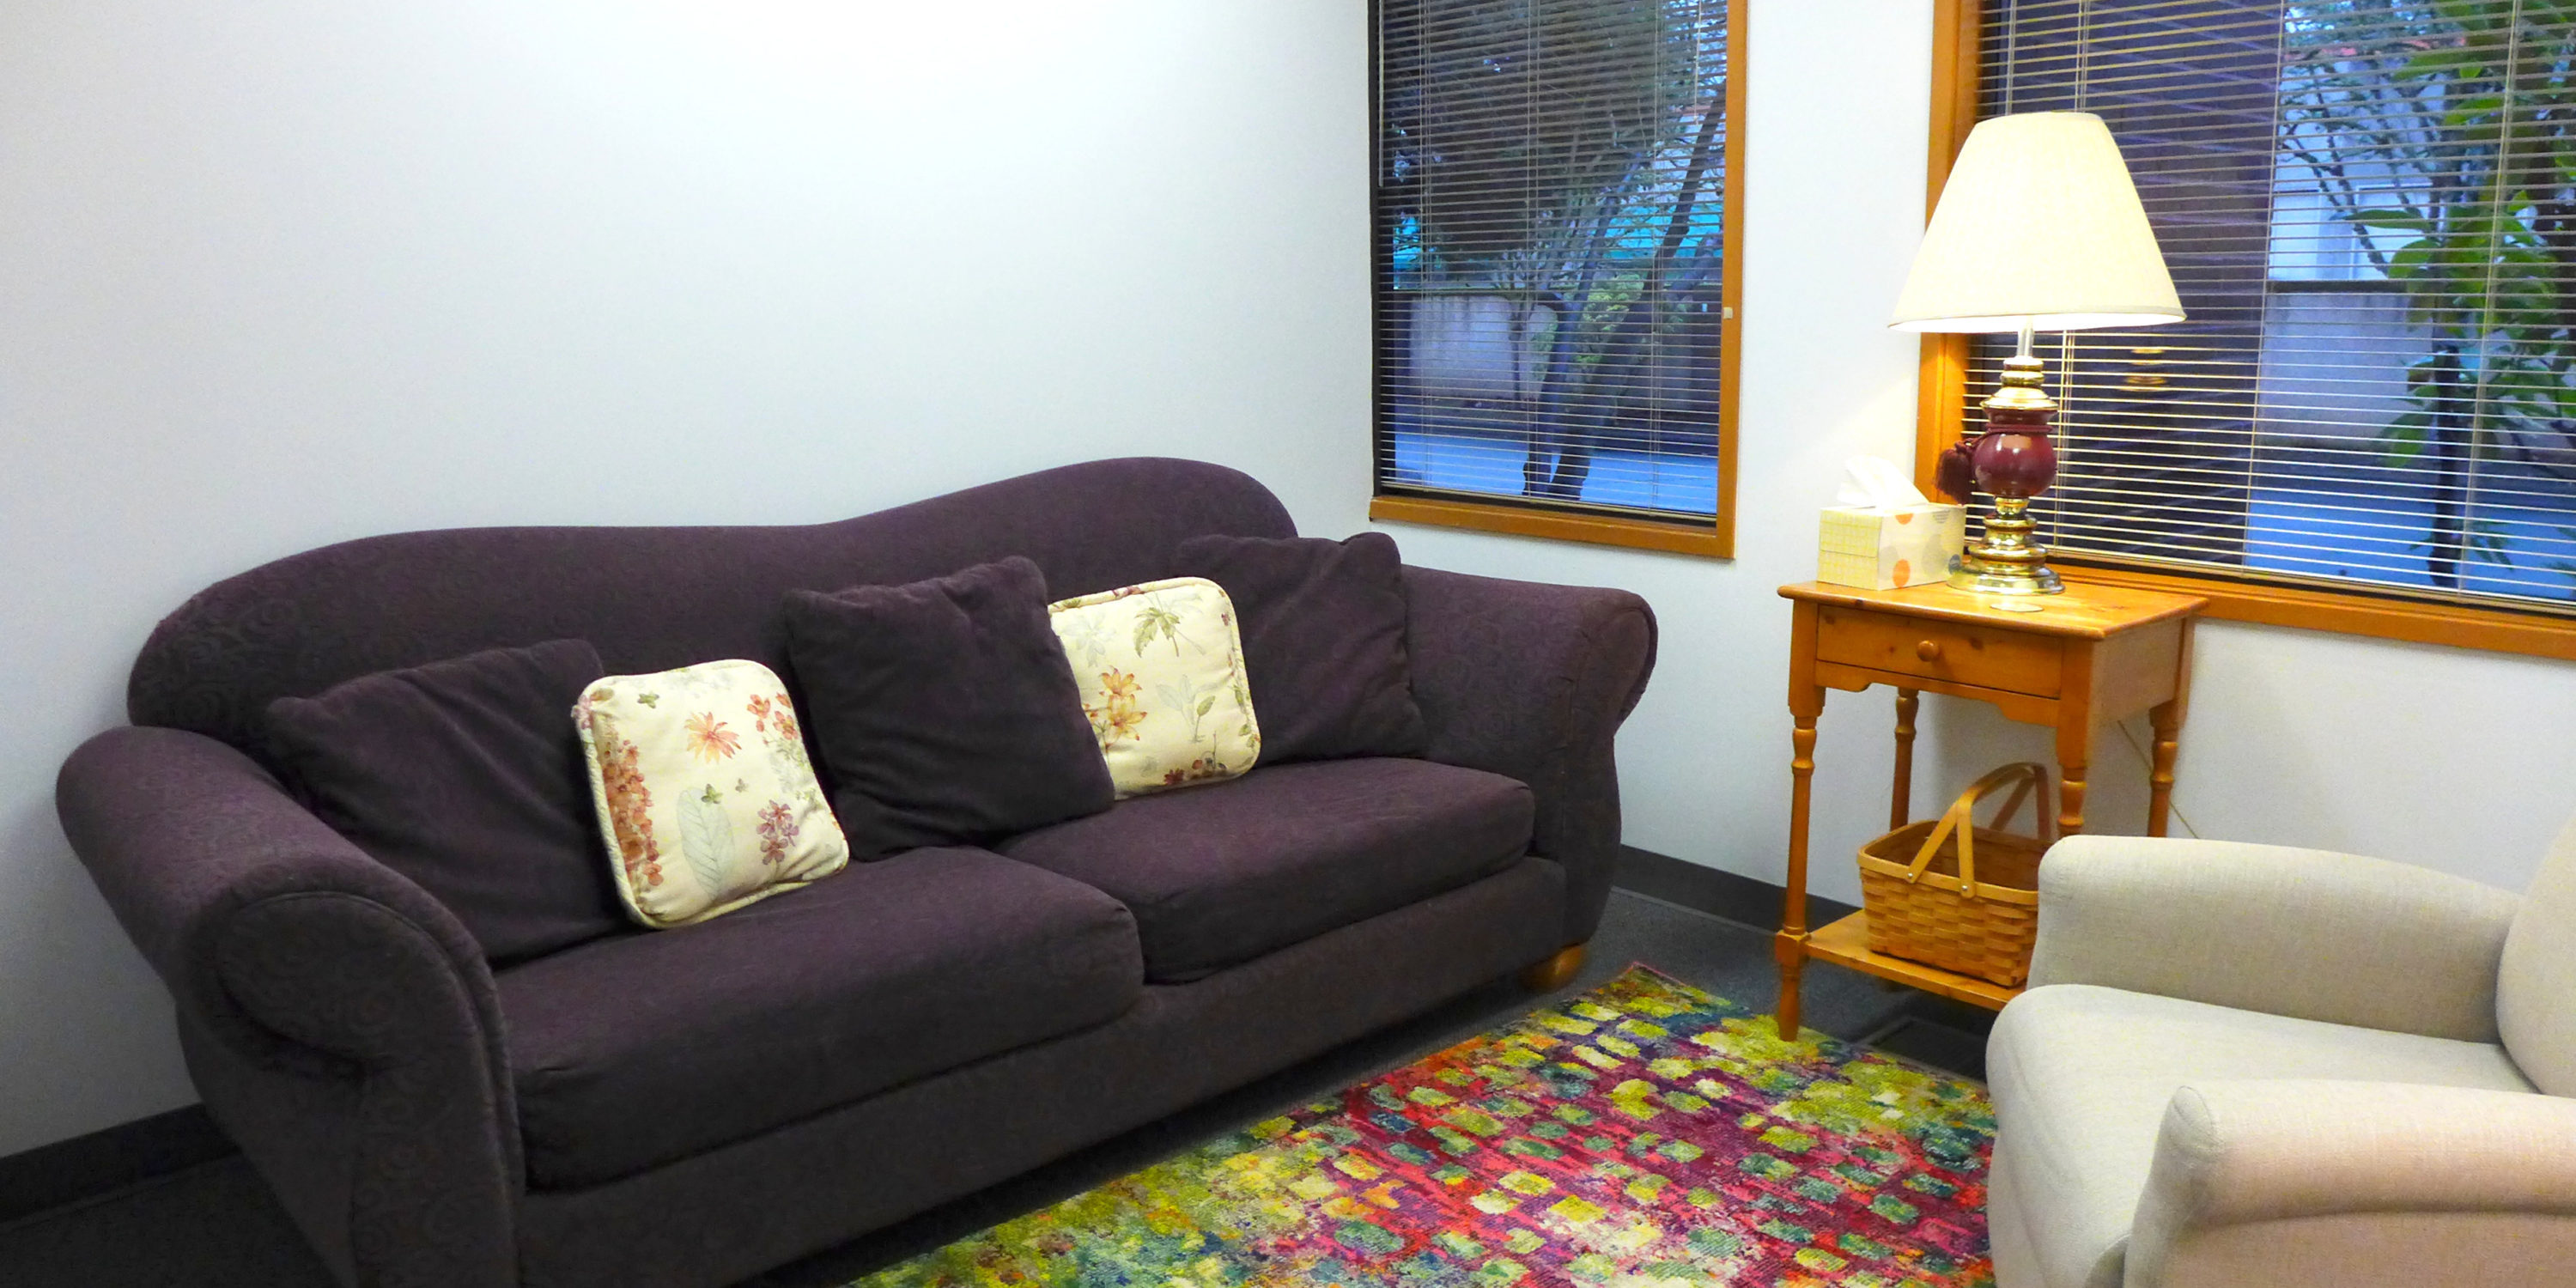 Counseling Room 7 for rent, Sage Center for Wholeness and Health, Beaverton Oregon